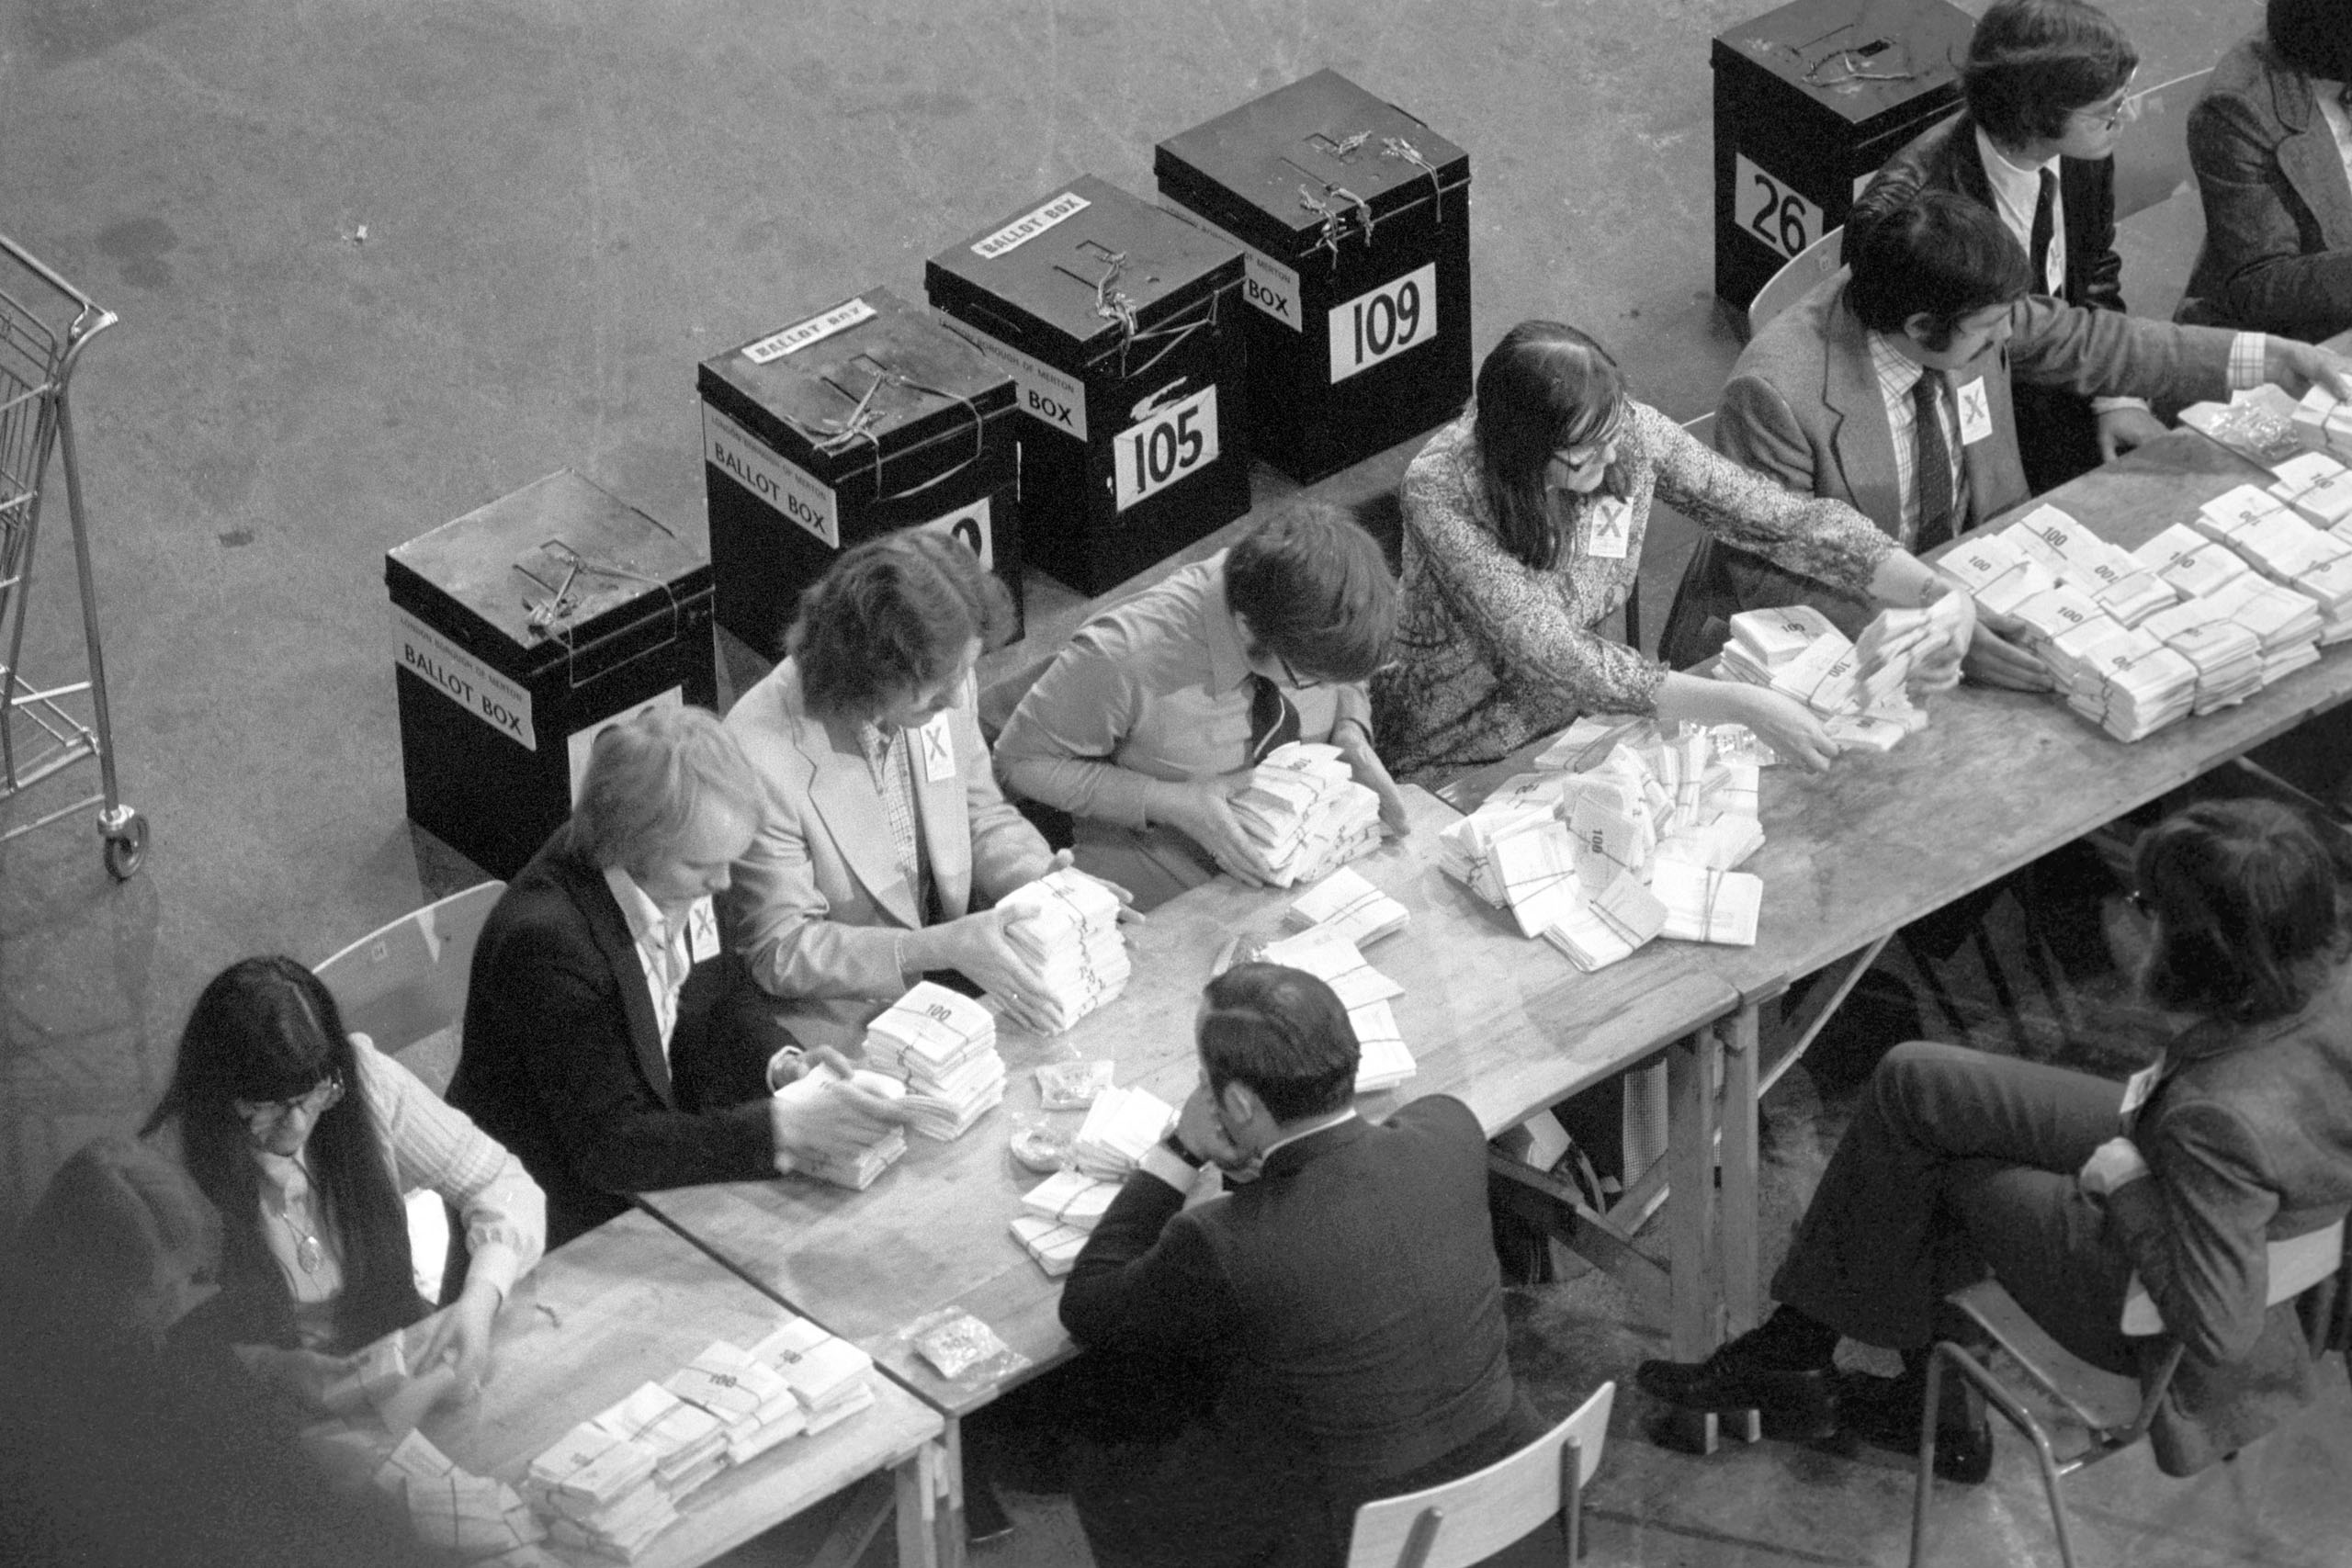 Ballot boxes are seen in the background as the count for the European Referendum gets underway, June 6, 1975.